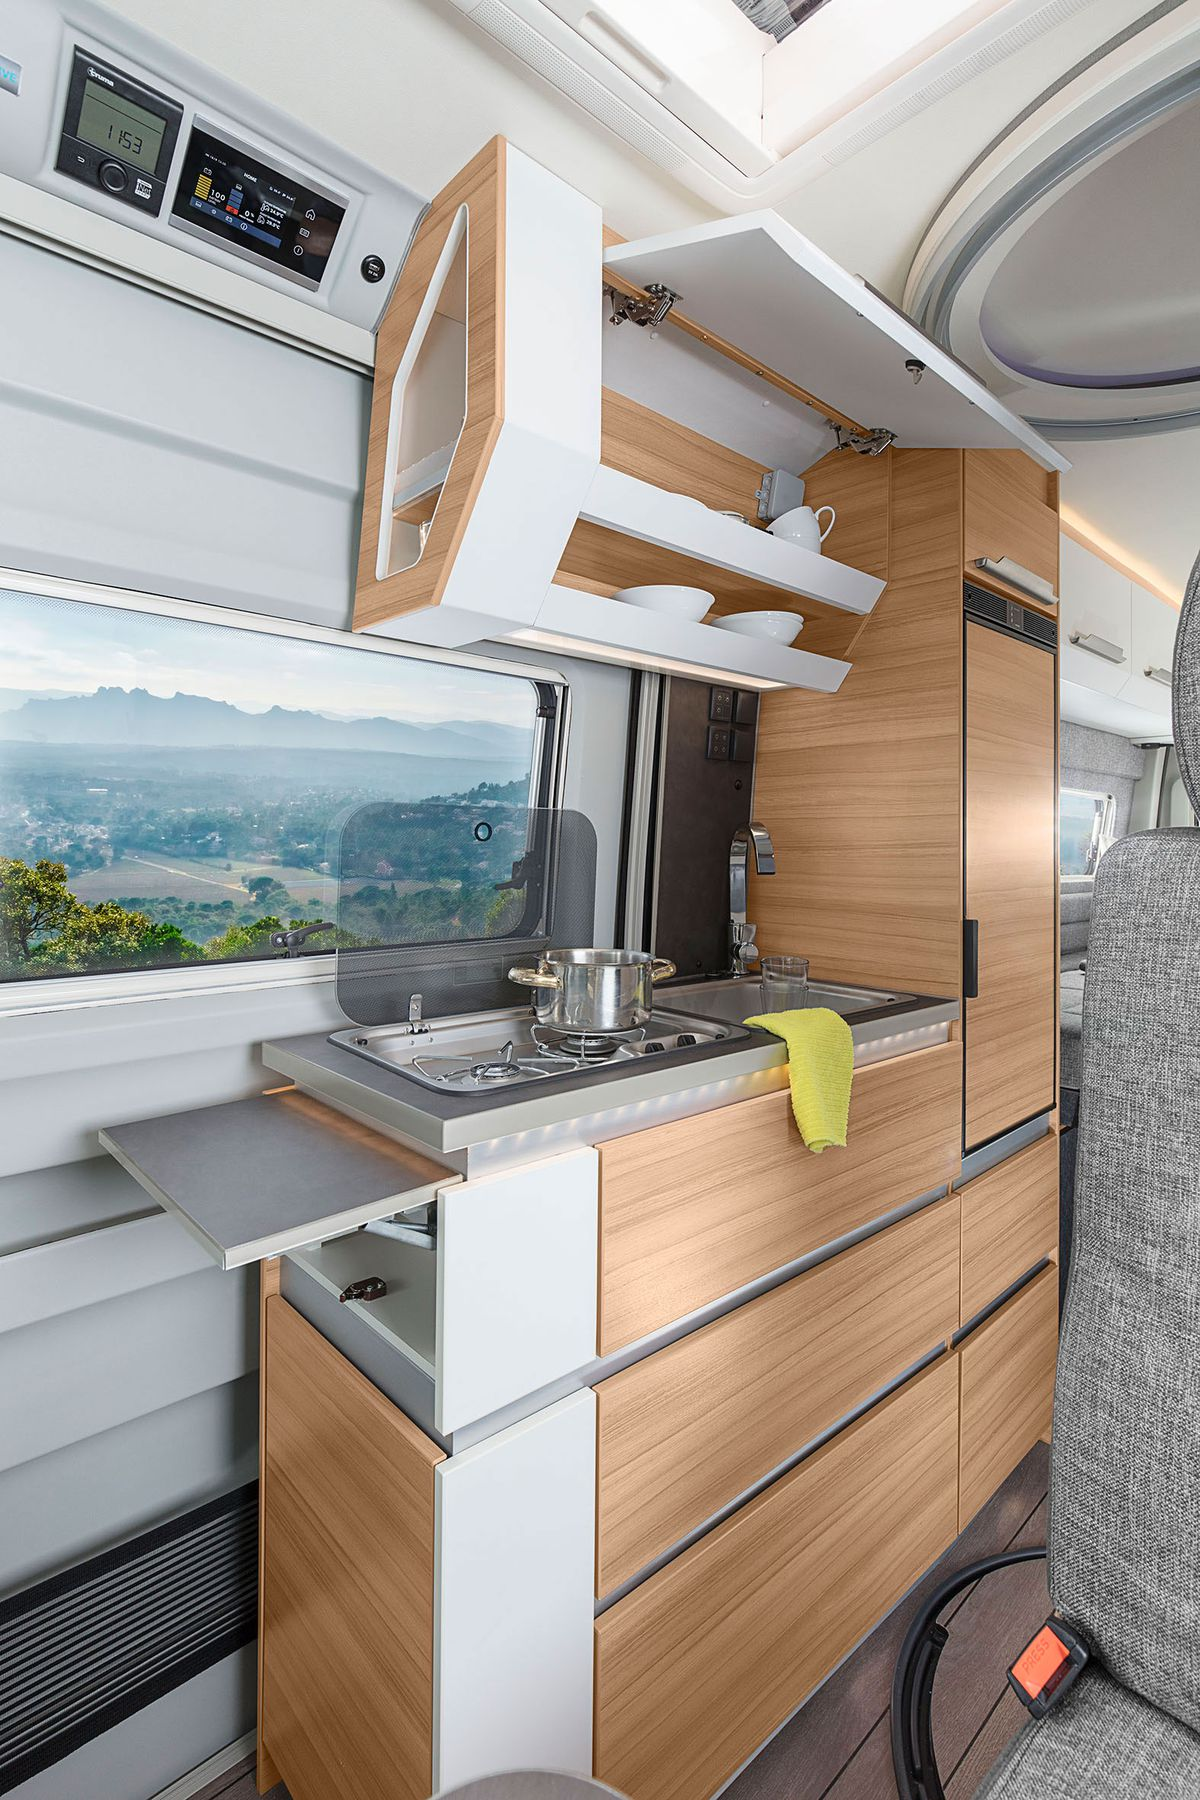 Knaus Boxdrive camper uses folding bed and wet bath to maximize ...